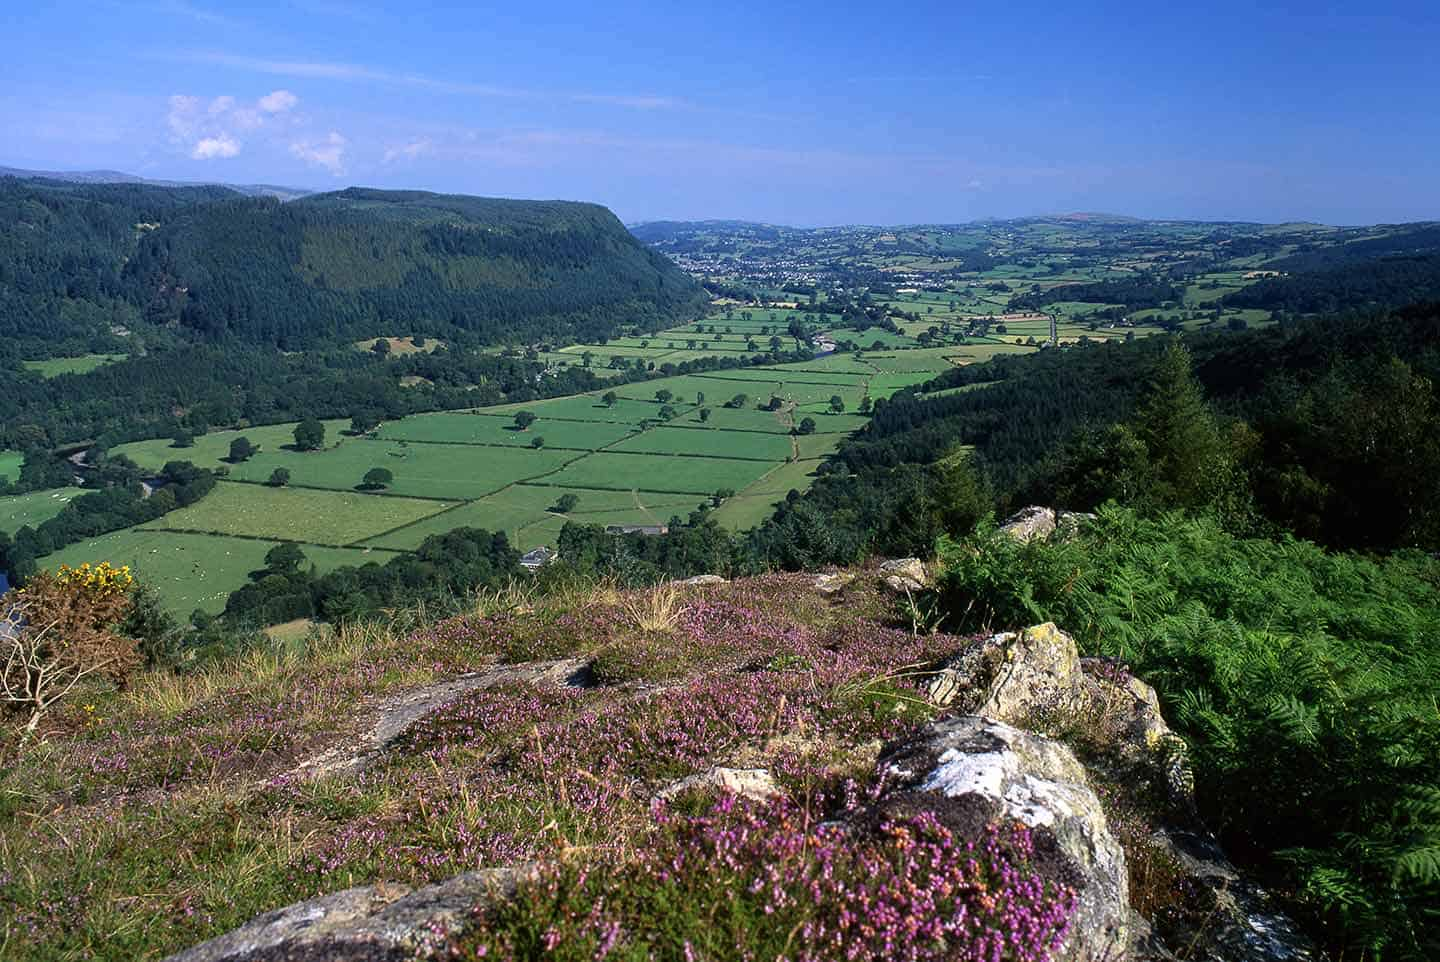 Image of the Conwy Valley from Mynydd Garthmyn